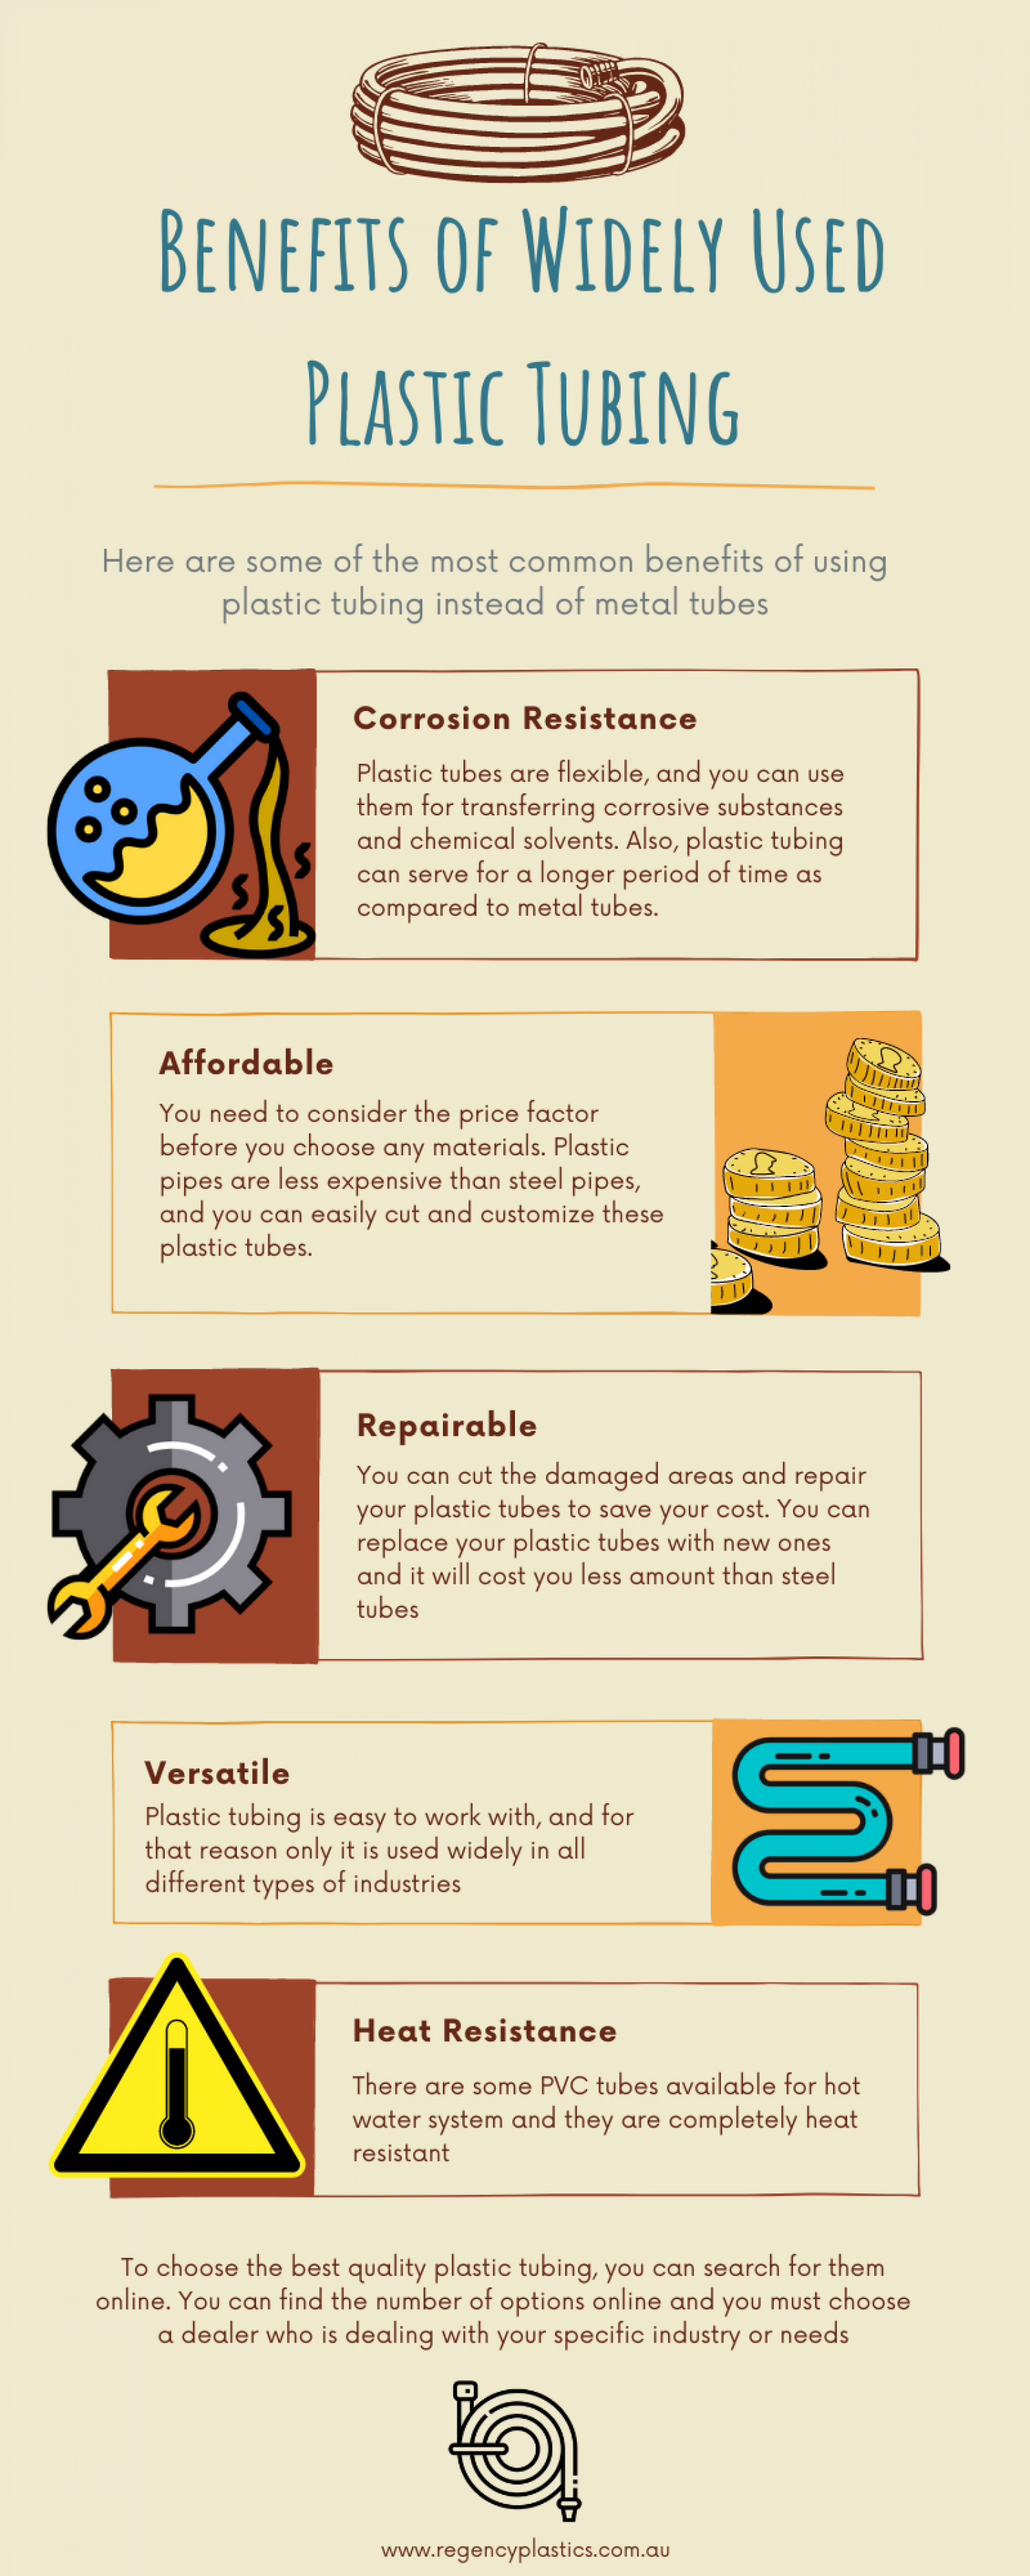 Benefits of Widely Used Plastic Tubing Infographic